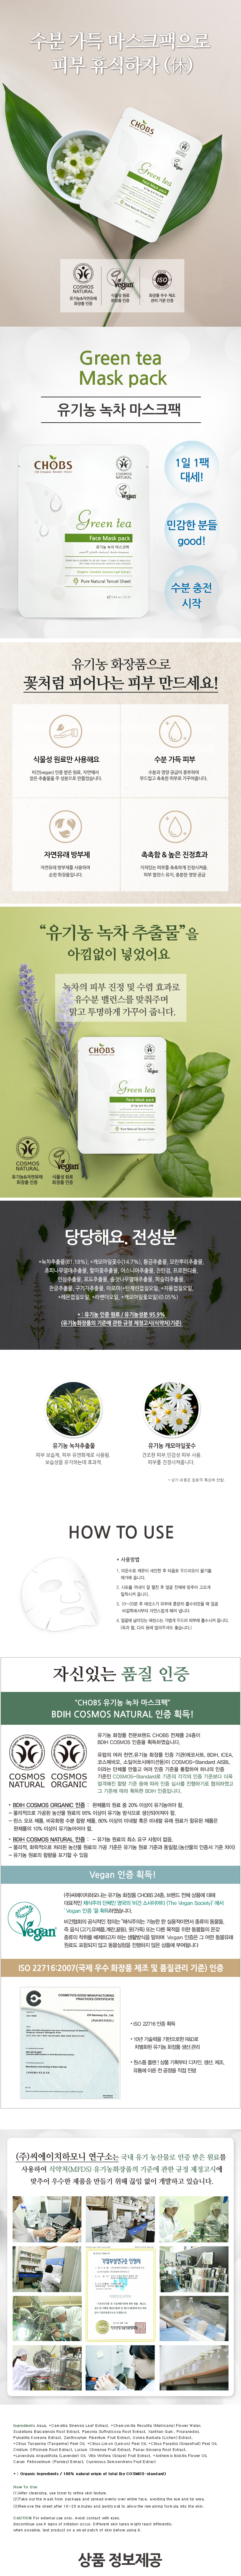 1506670968greentea_certify.jpg